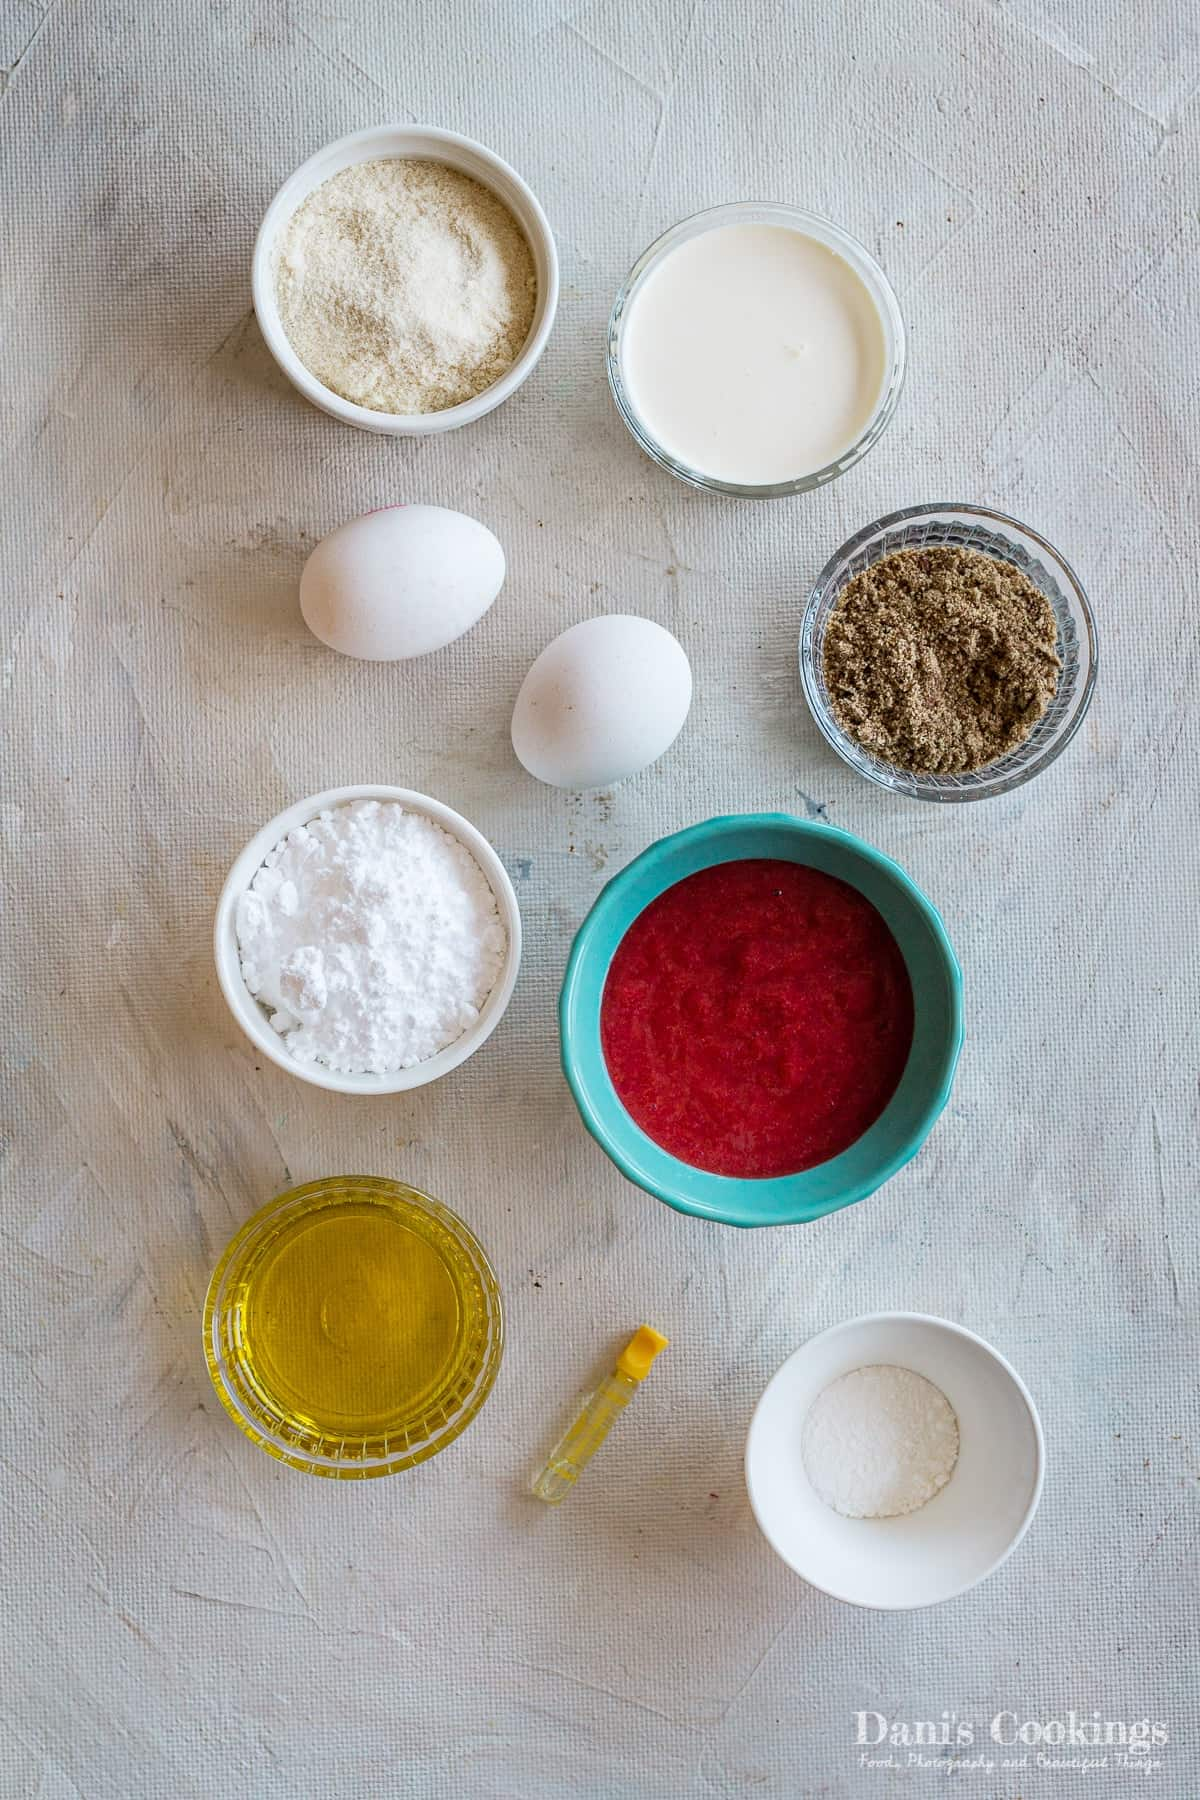 ingredients for the chocolate frosted keto strawberry cupcakes